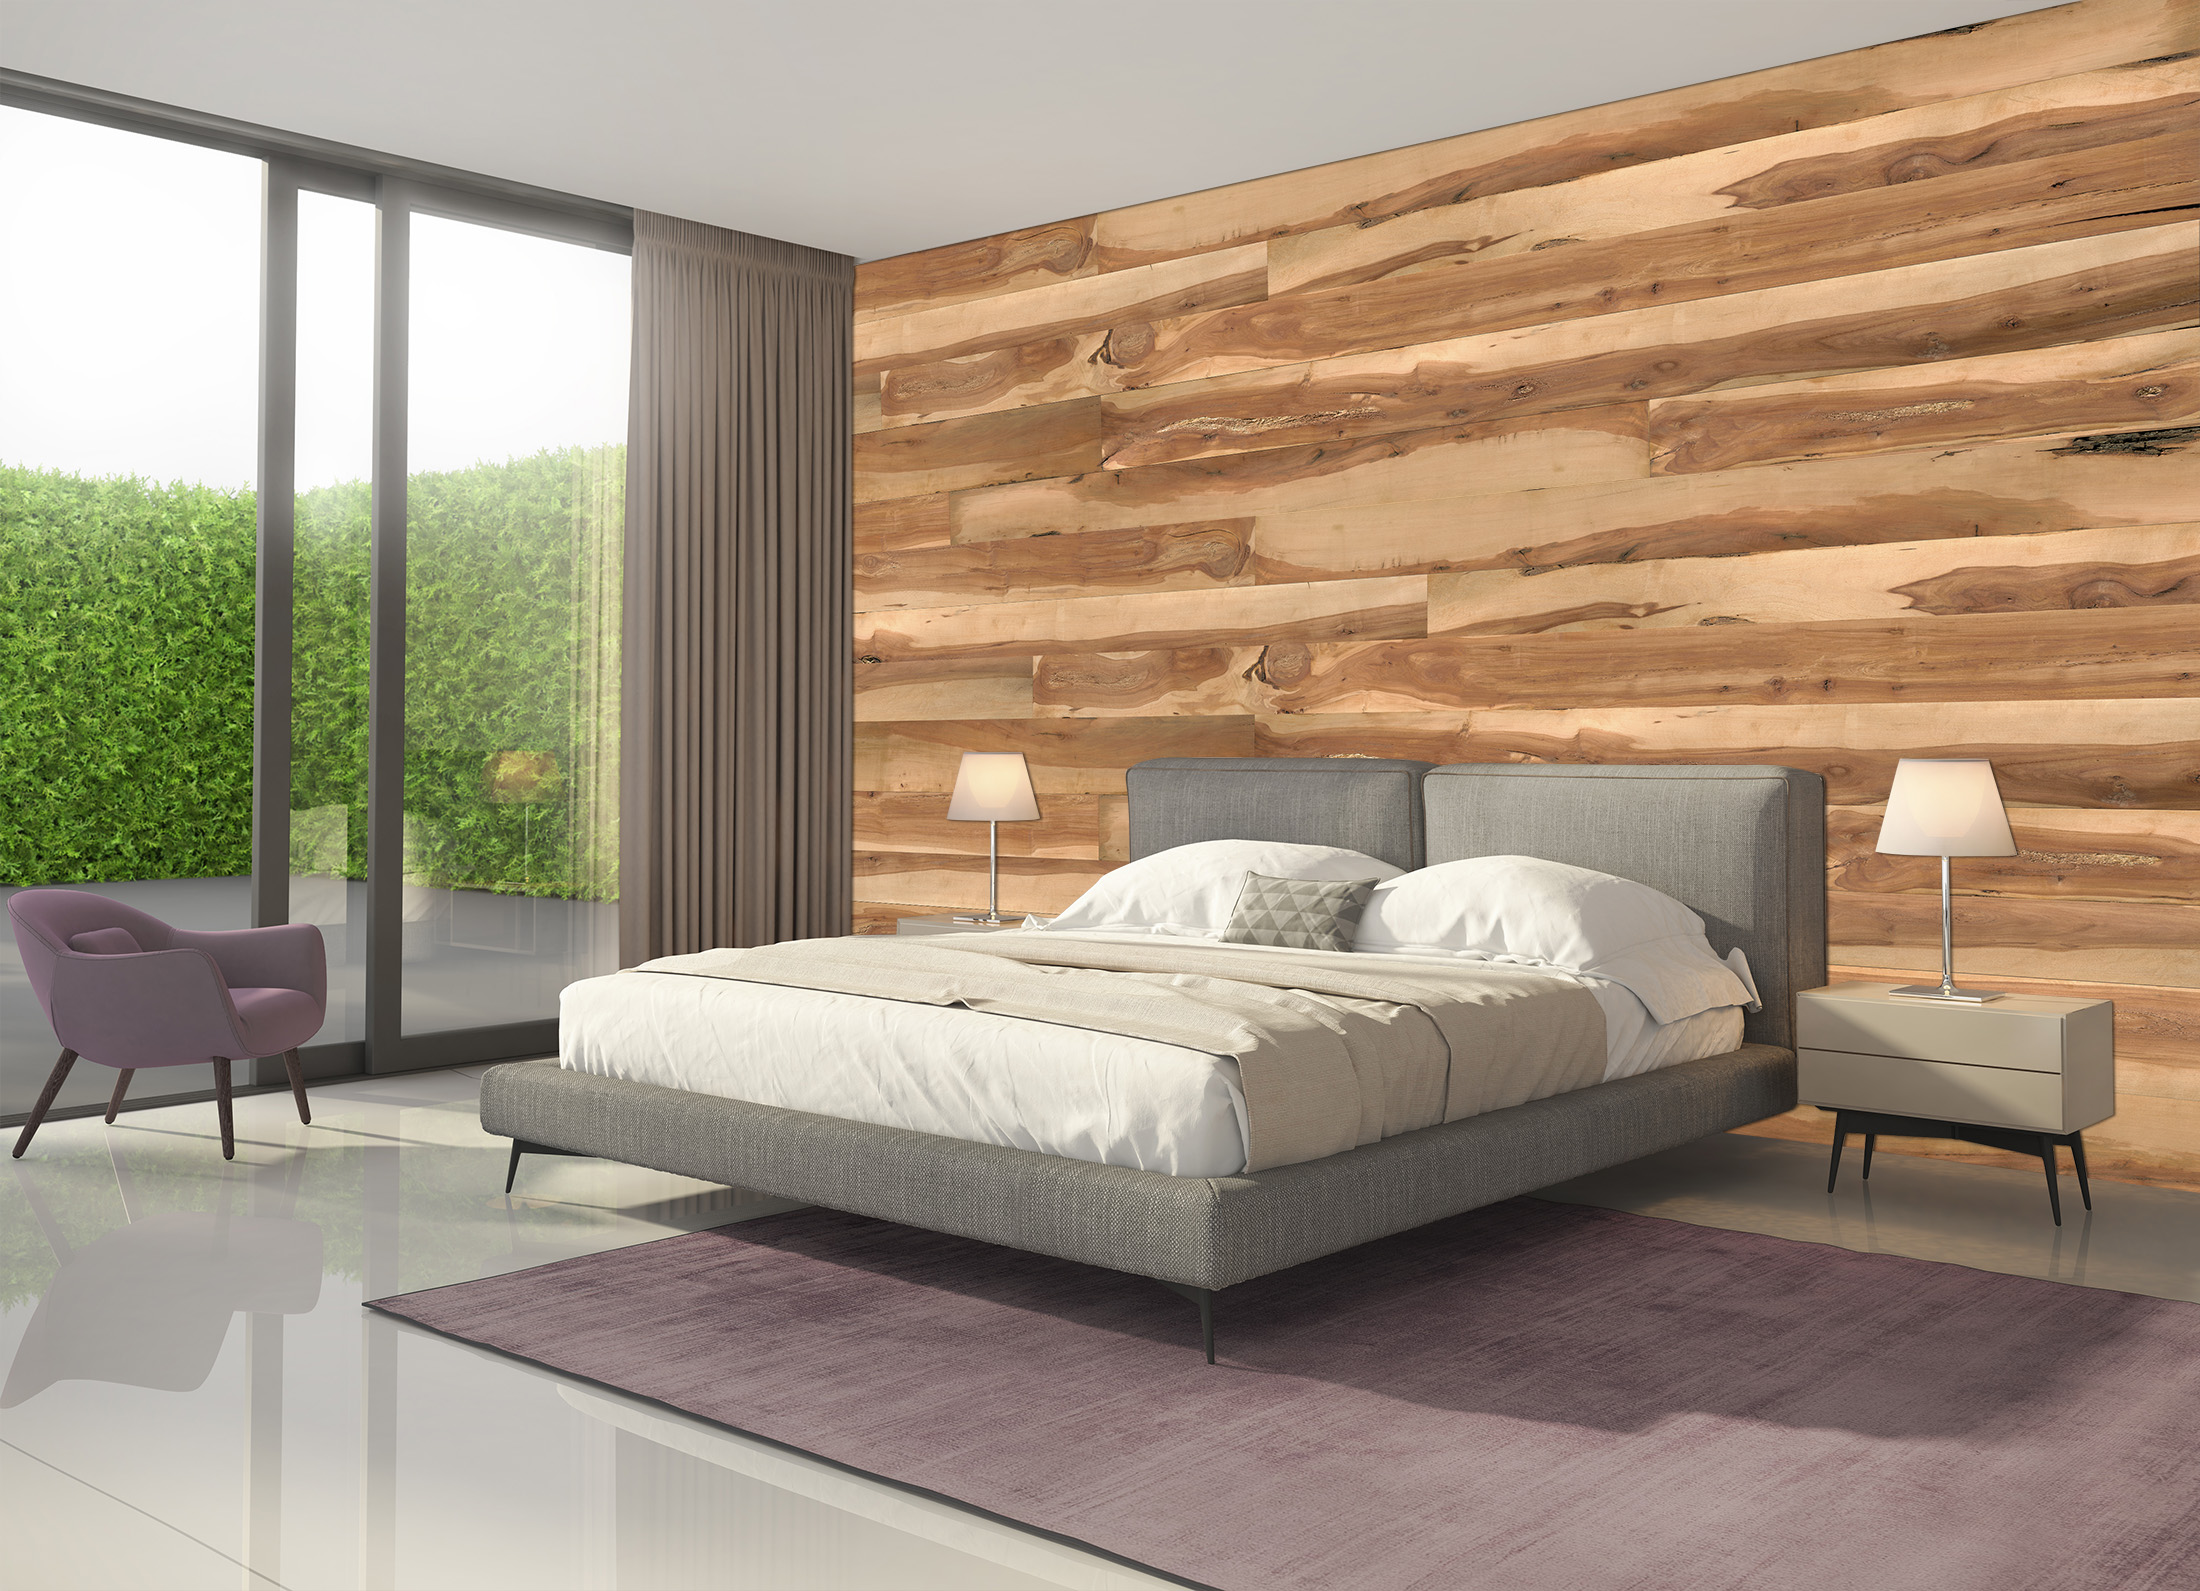 wandverkleidung aus holz versch nere dein zuhause mit wandverkleidungen. Black Bedroom Furniture Sets. Home Design Ideas